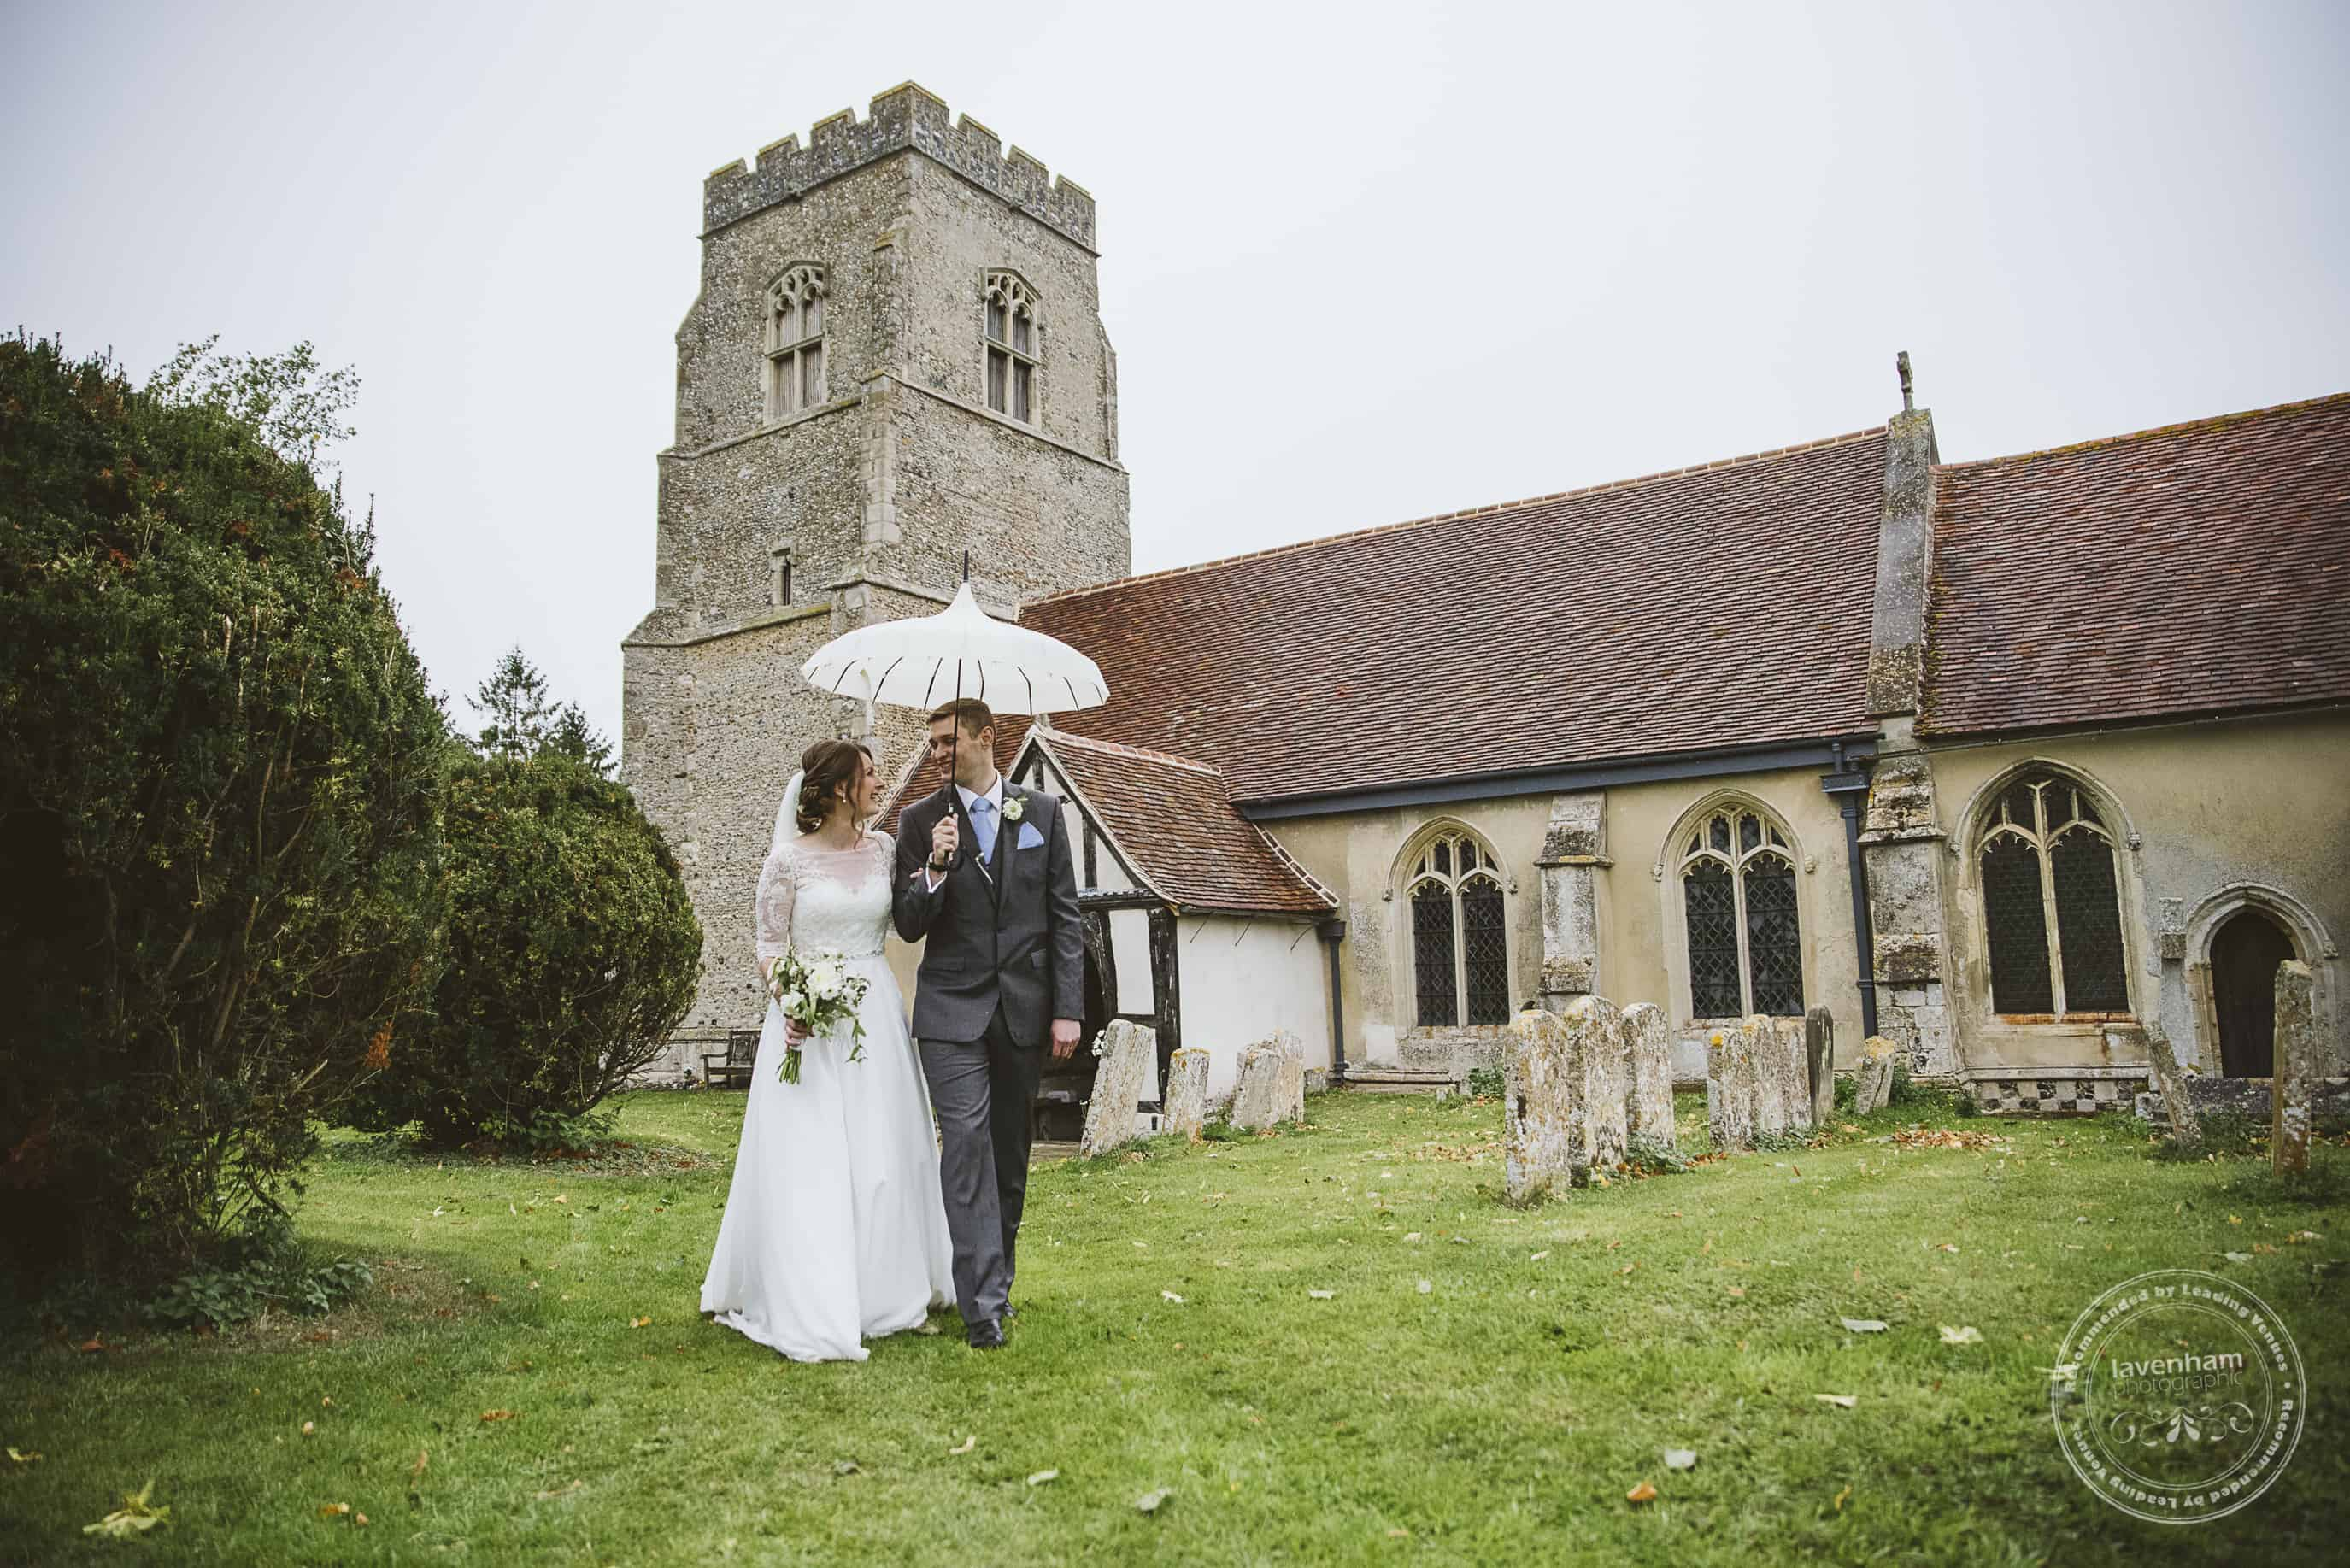 220918 Alpheton Barn Wedding Photography by Lavenham Photographic 115